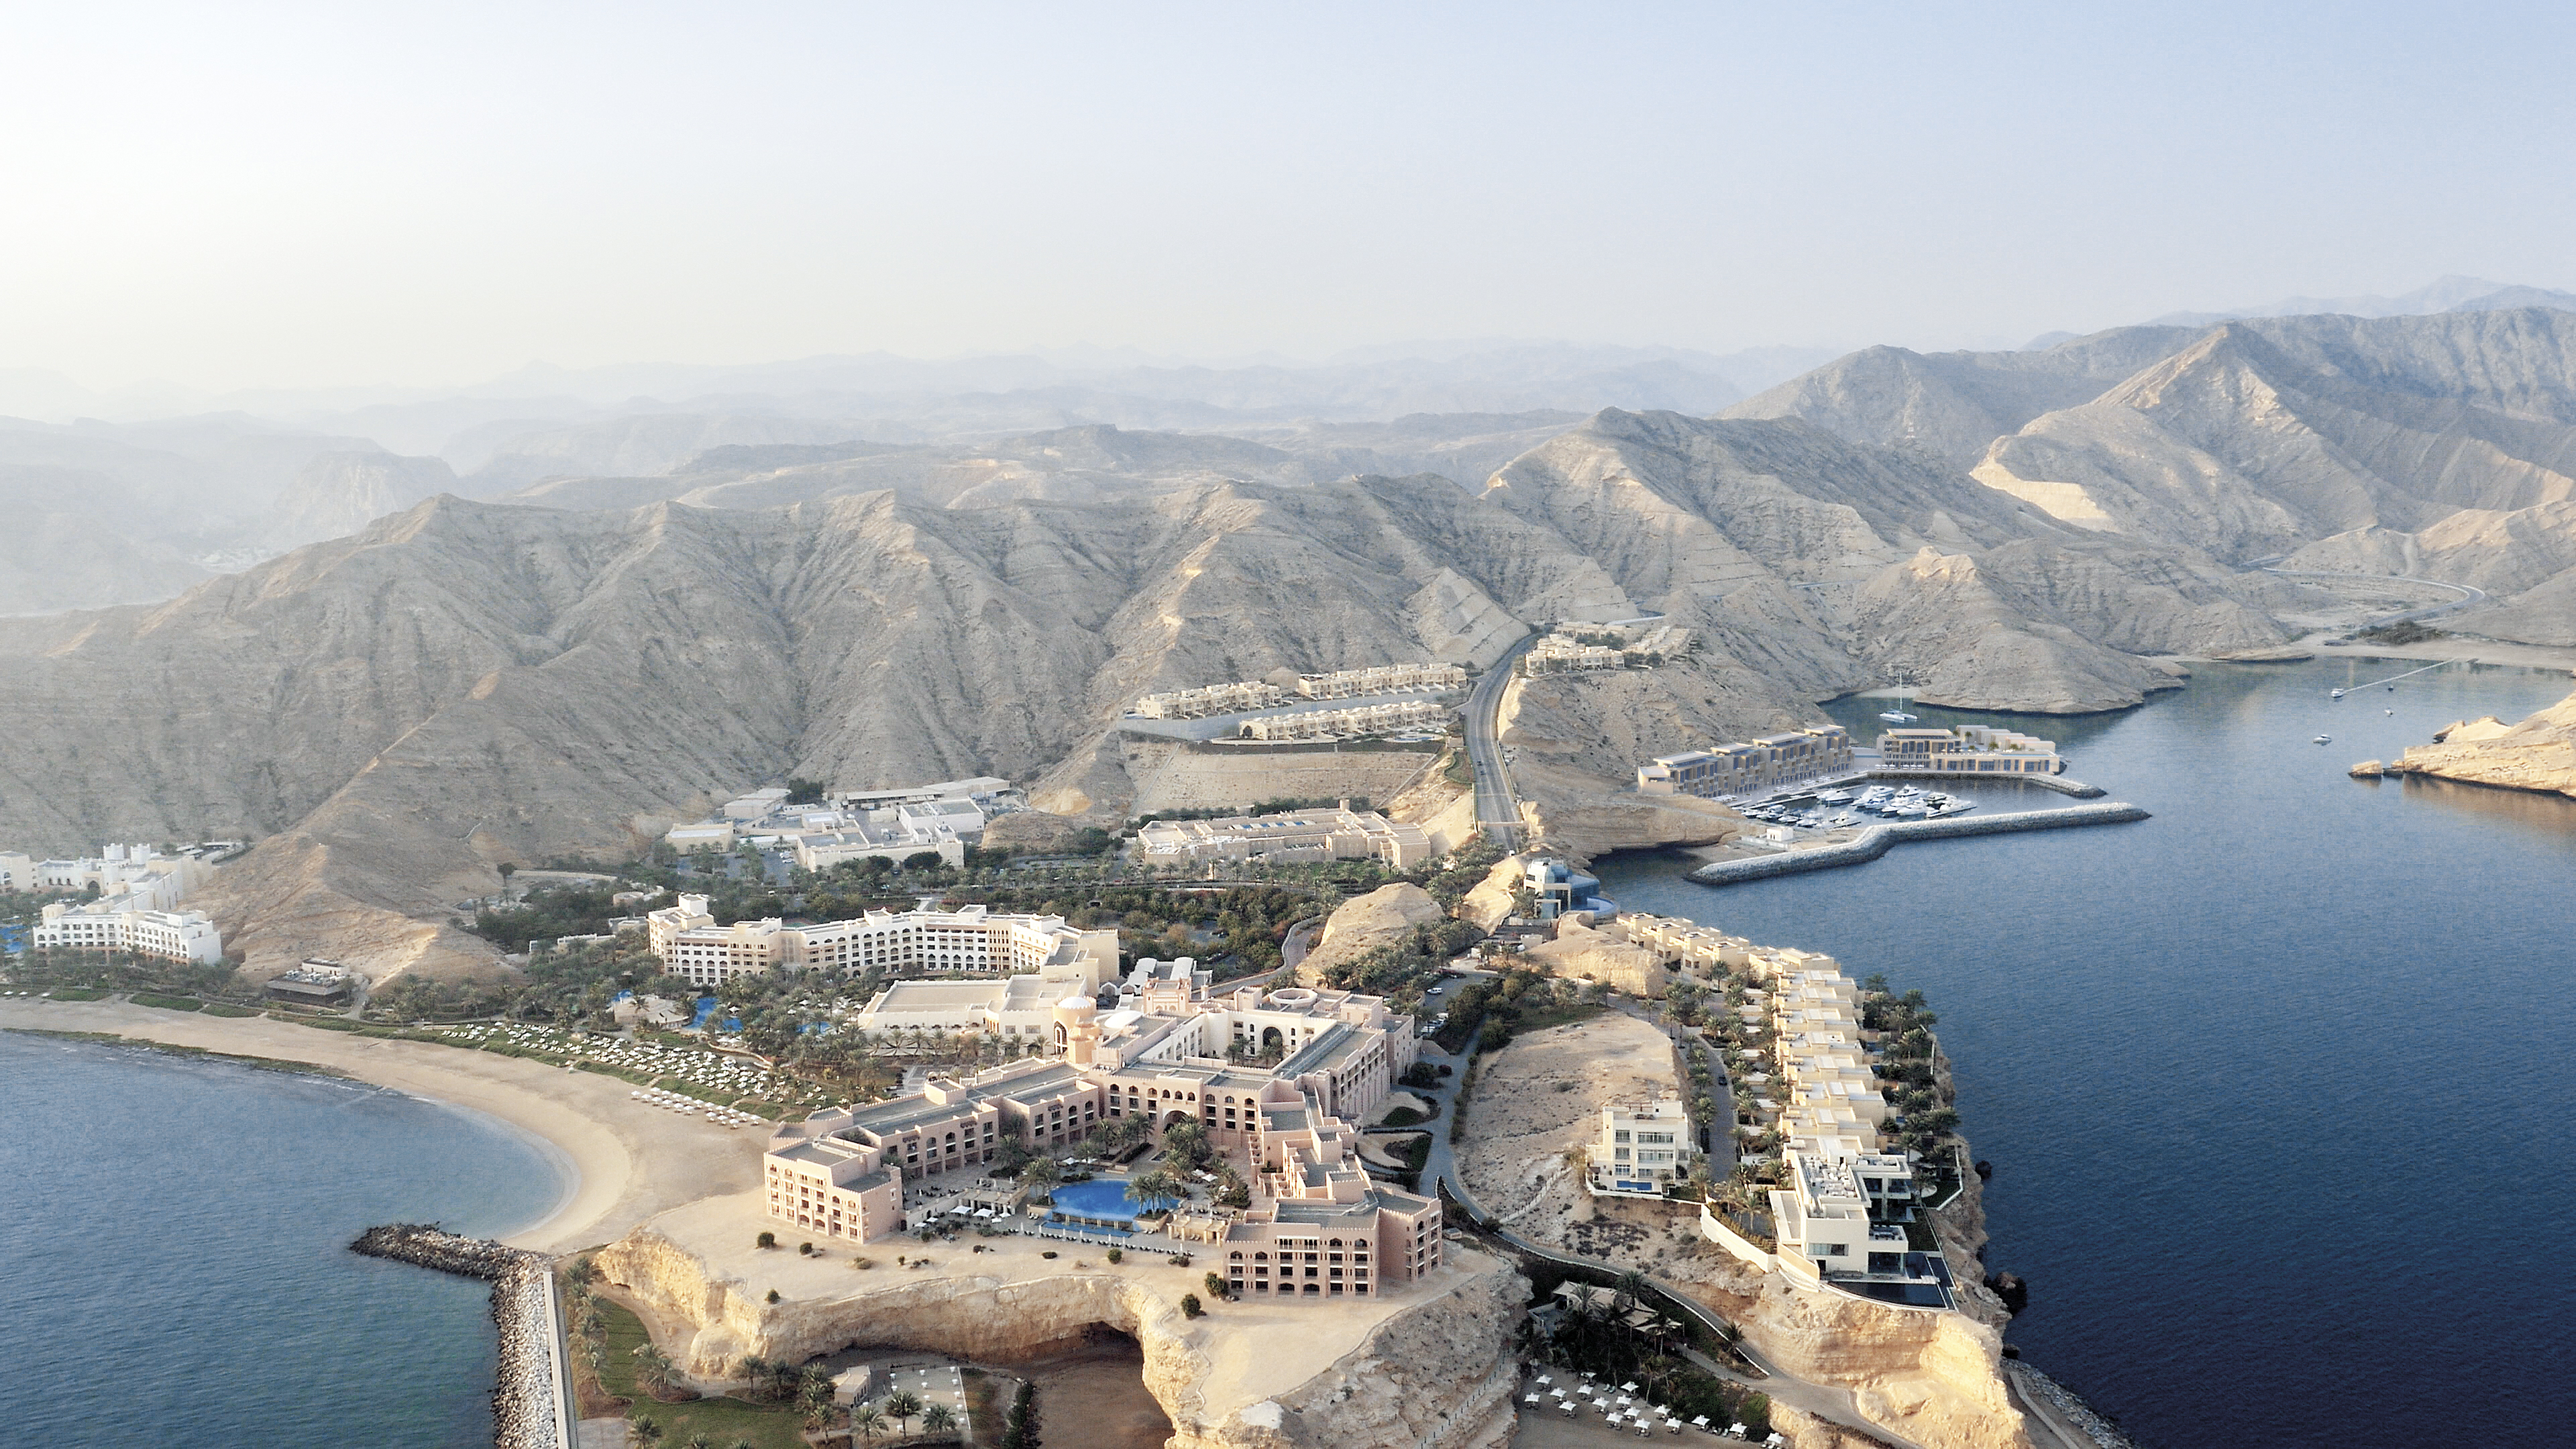 Barr Al Jissah is located on the north east coast of Oman